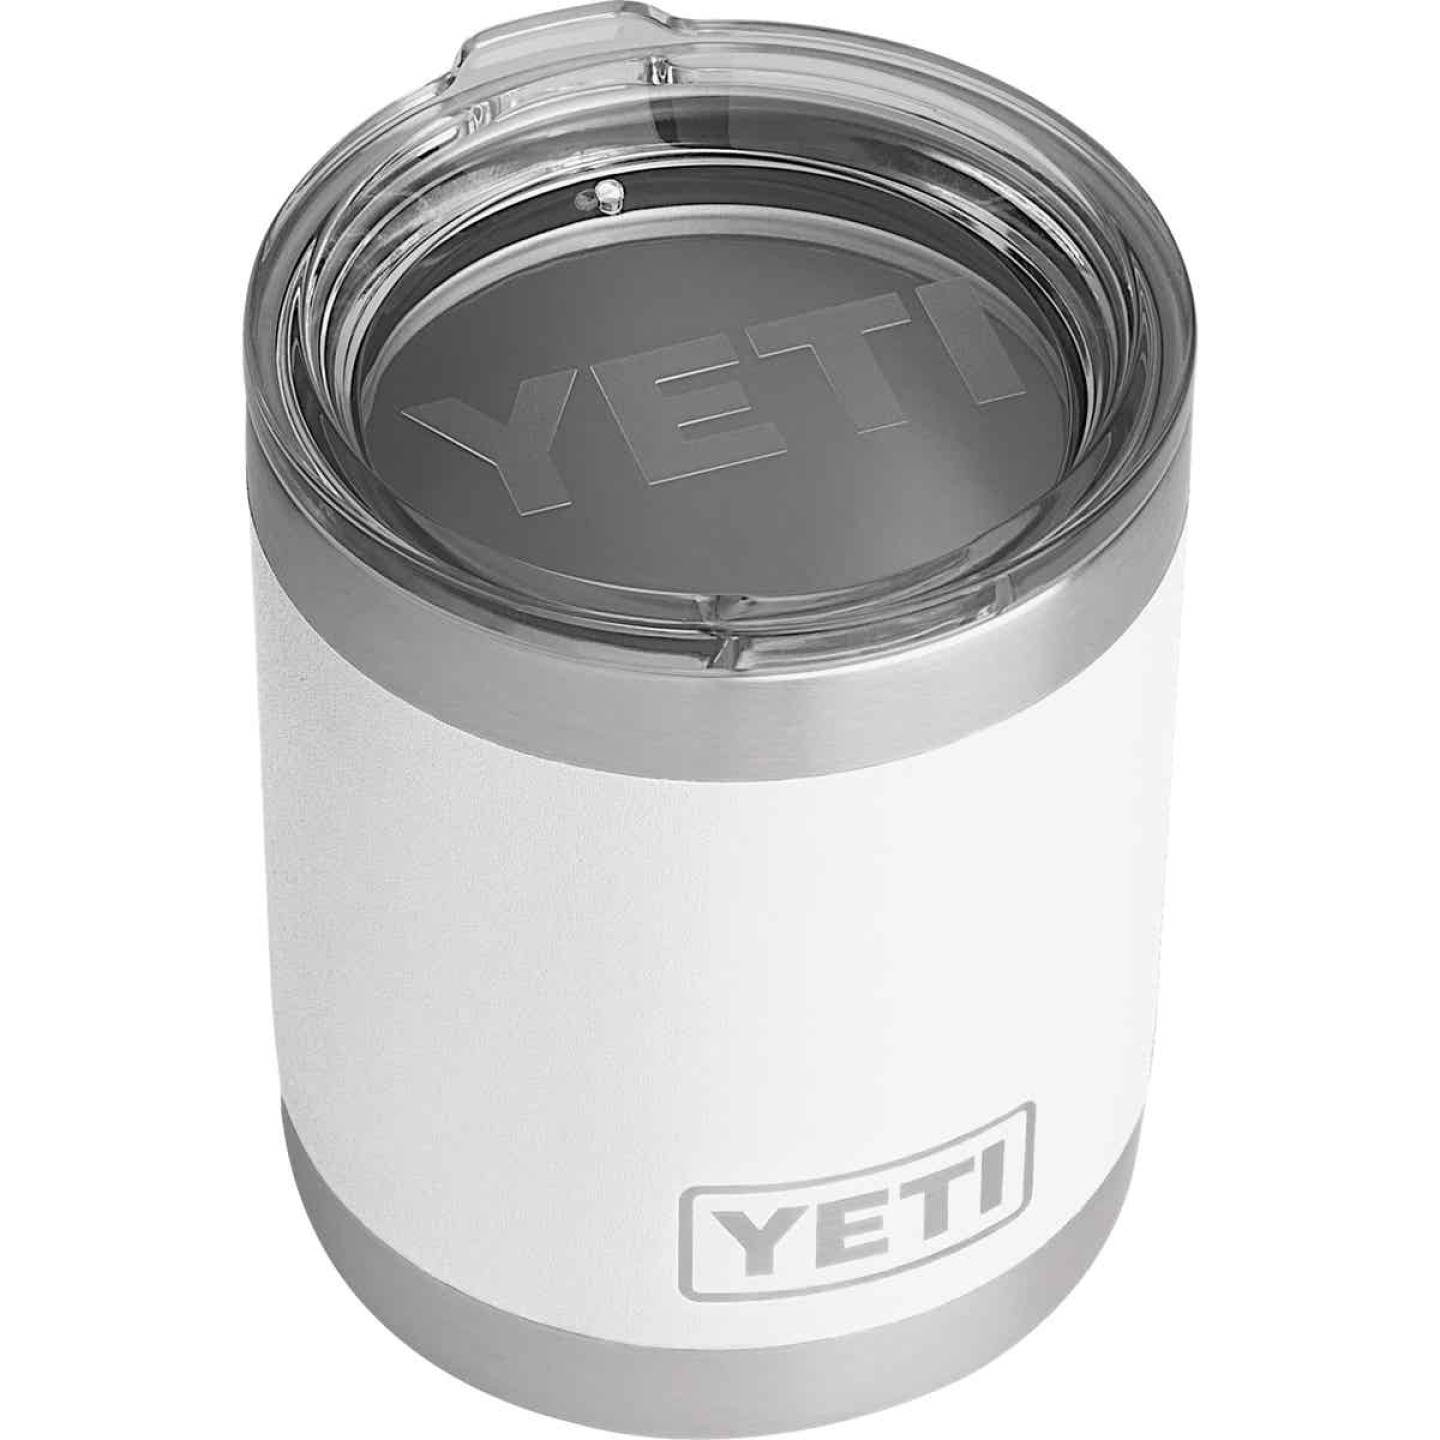 Yeti Rambler Lowball 10 Oz. White Stainless Steel Insulated Tumbler Image 1